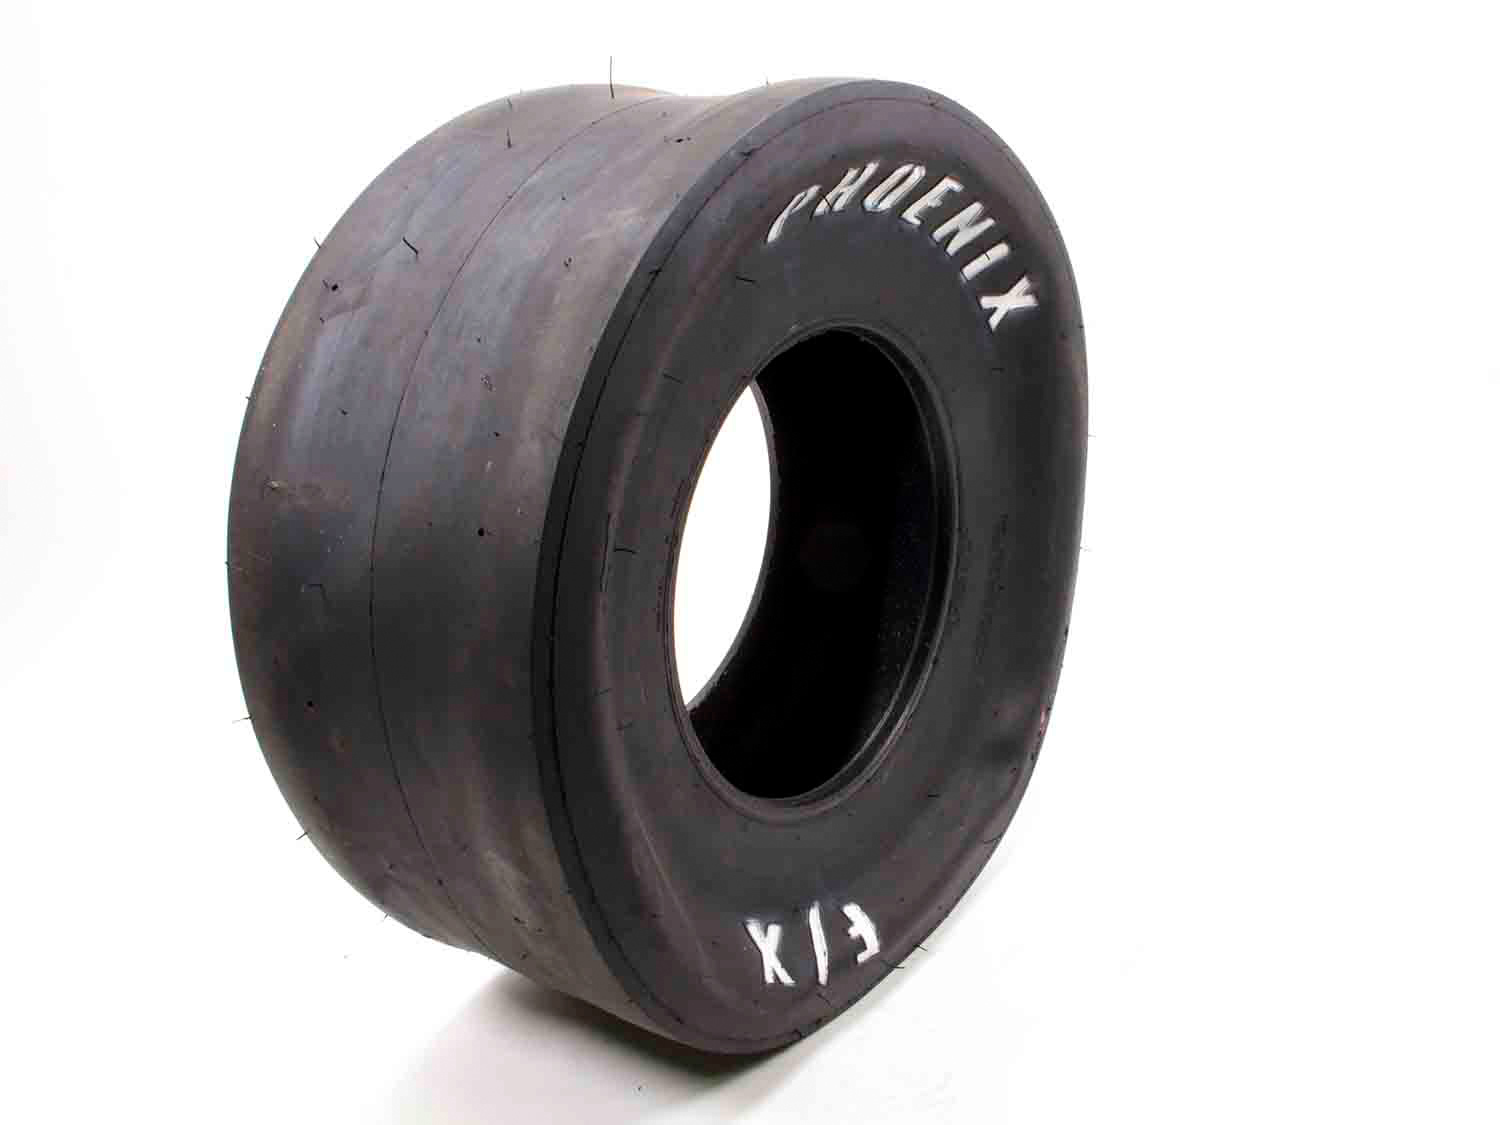 Phoenix Racing Tires PH337 Tire, Drag FX Slick, 31.25 x 12.2-15, Bias Ply, F9 Compound, White Letter Sidewall, Each